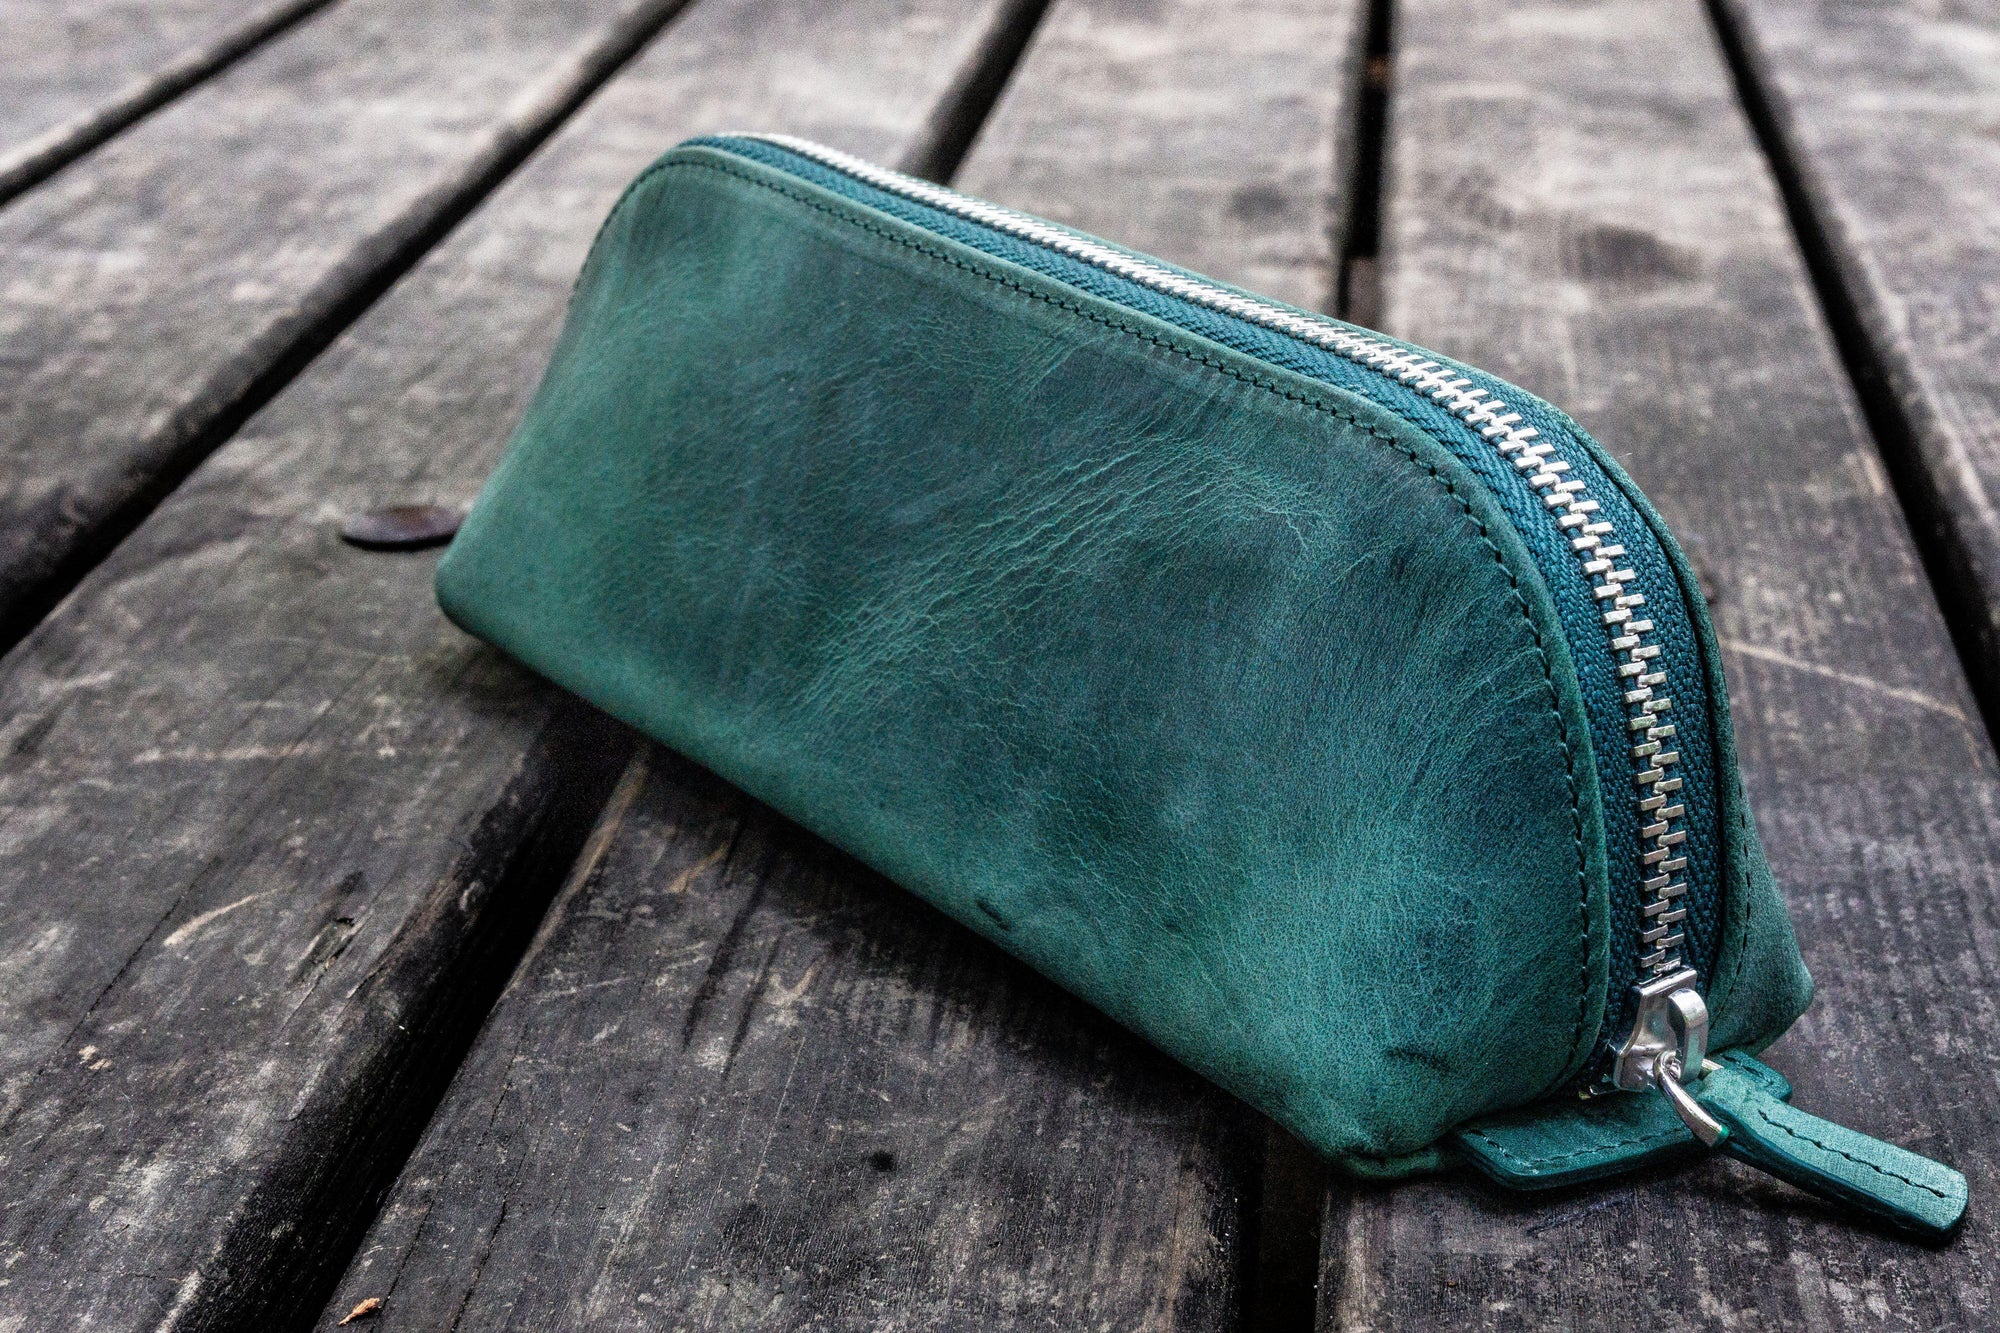 XLarge Zipper Leather Pencil Case - Crazy Horse Forest Green-Galen Leather